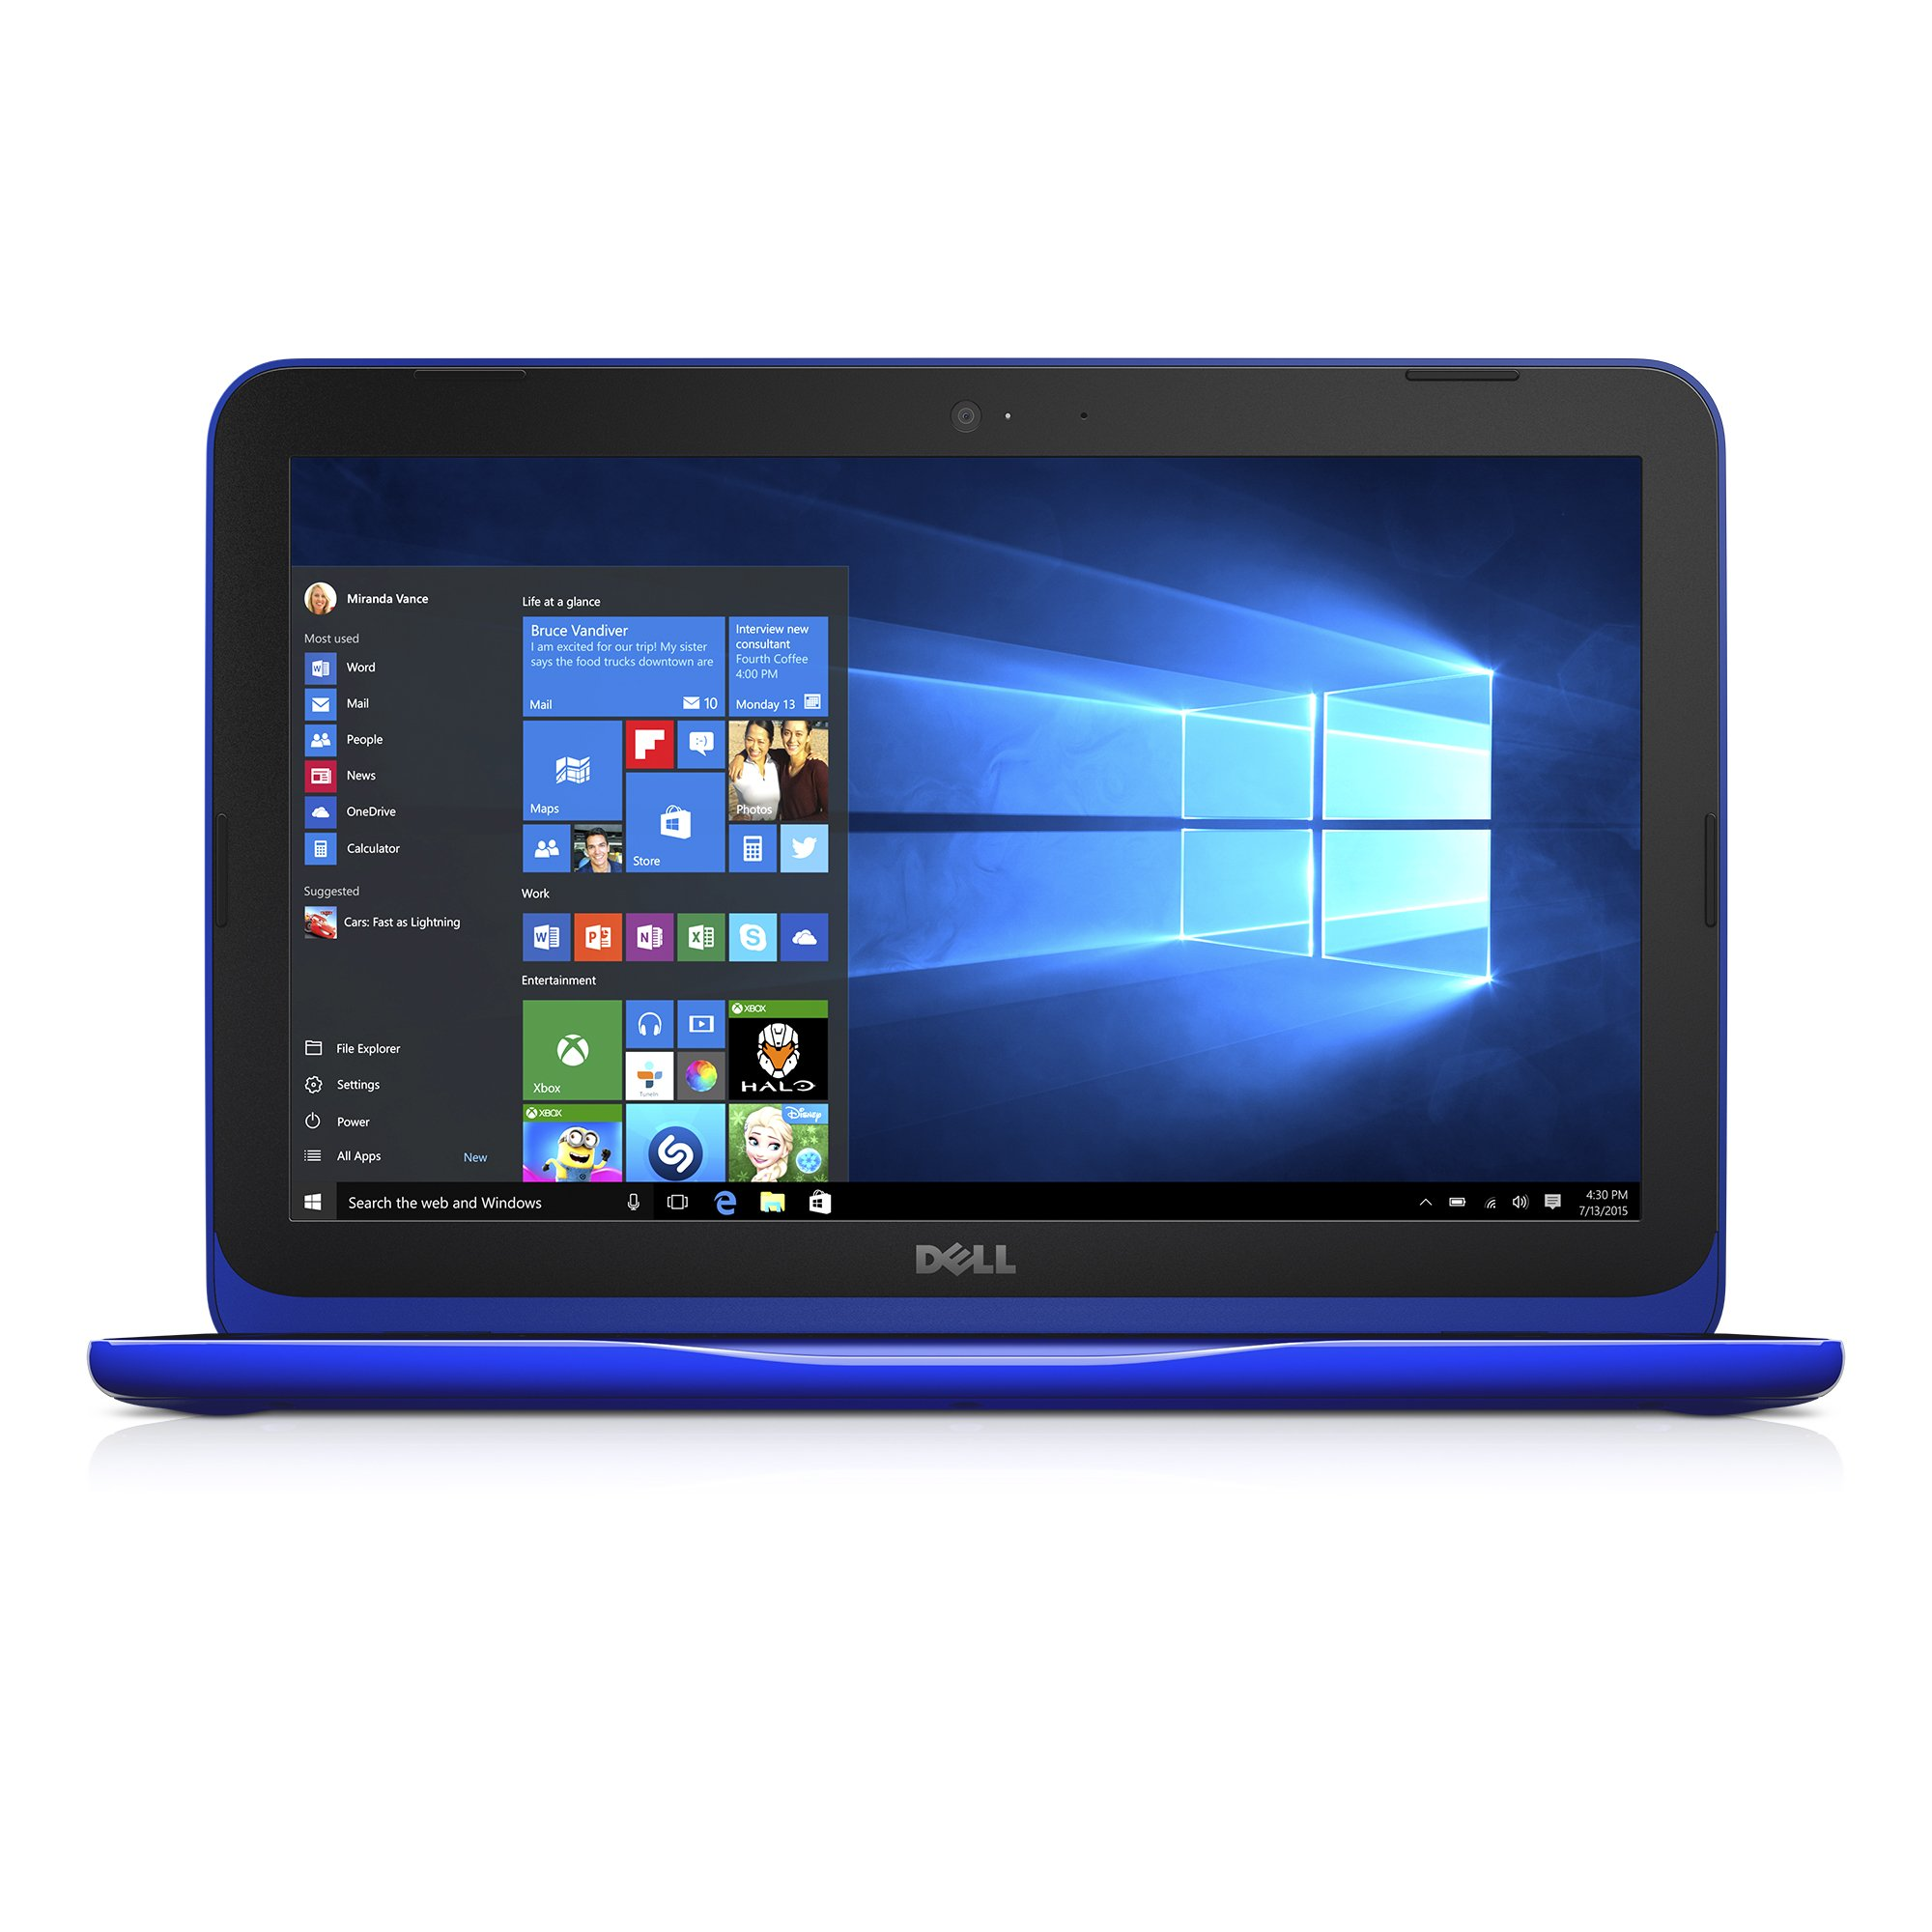 dell inspiron i3162 0003blu 11 6 inch hd laptop intel celeron n3060 4gb ram 3 ebay. Black Bedroom Furniture Sets. Home Design Ideas